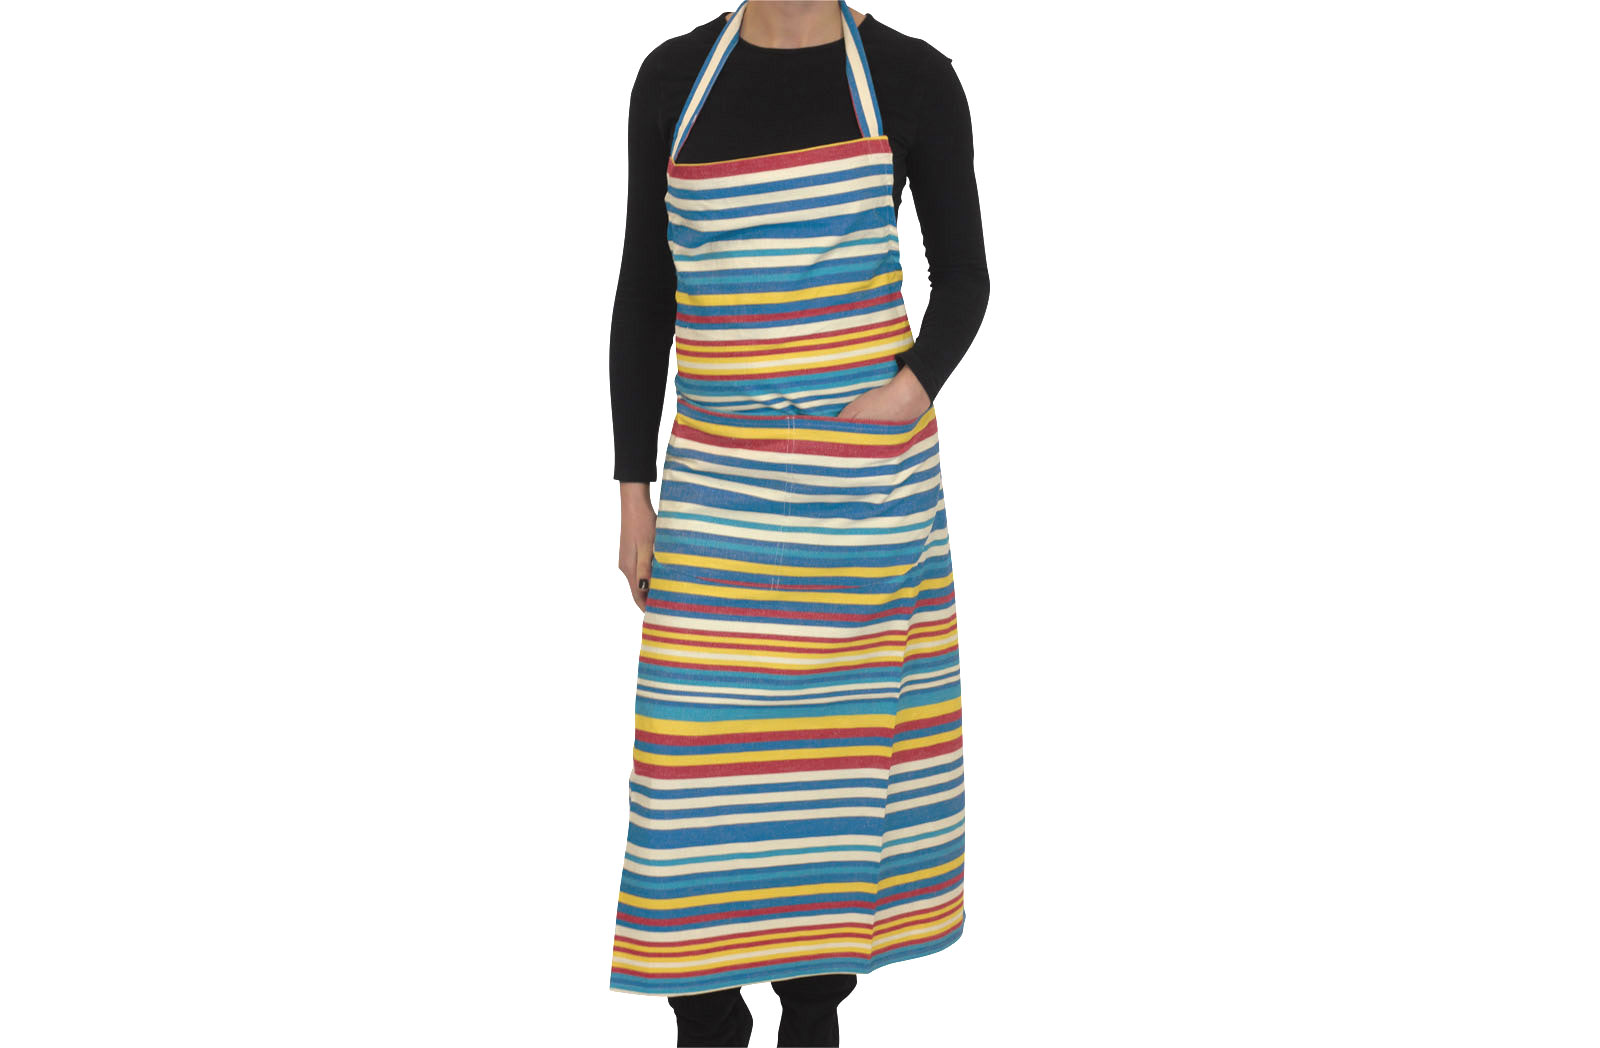 Denim Blue Striped Aprons Denim Blue  Cream  Turquoise  Stripes